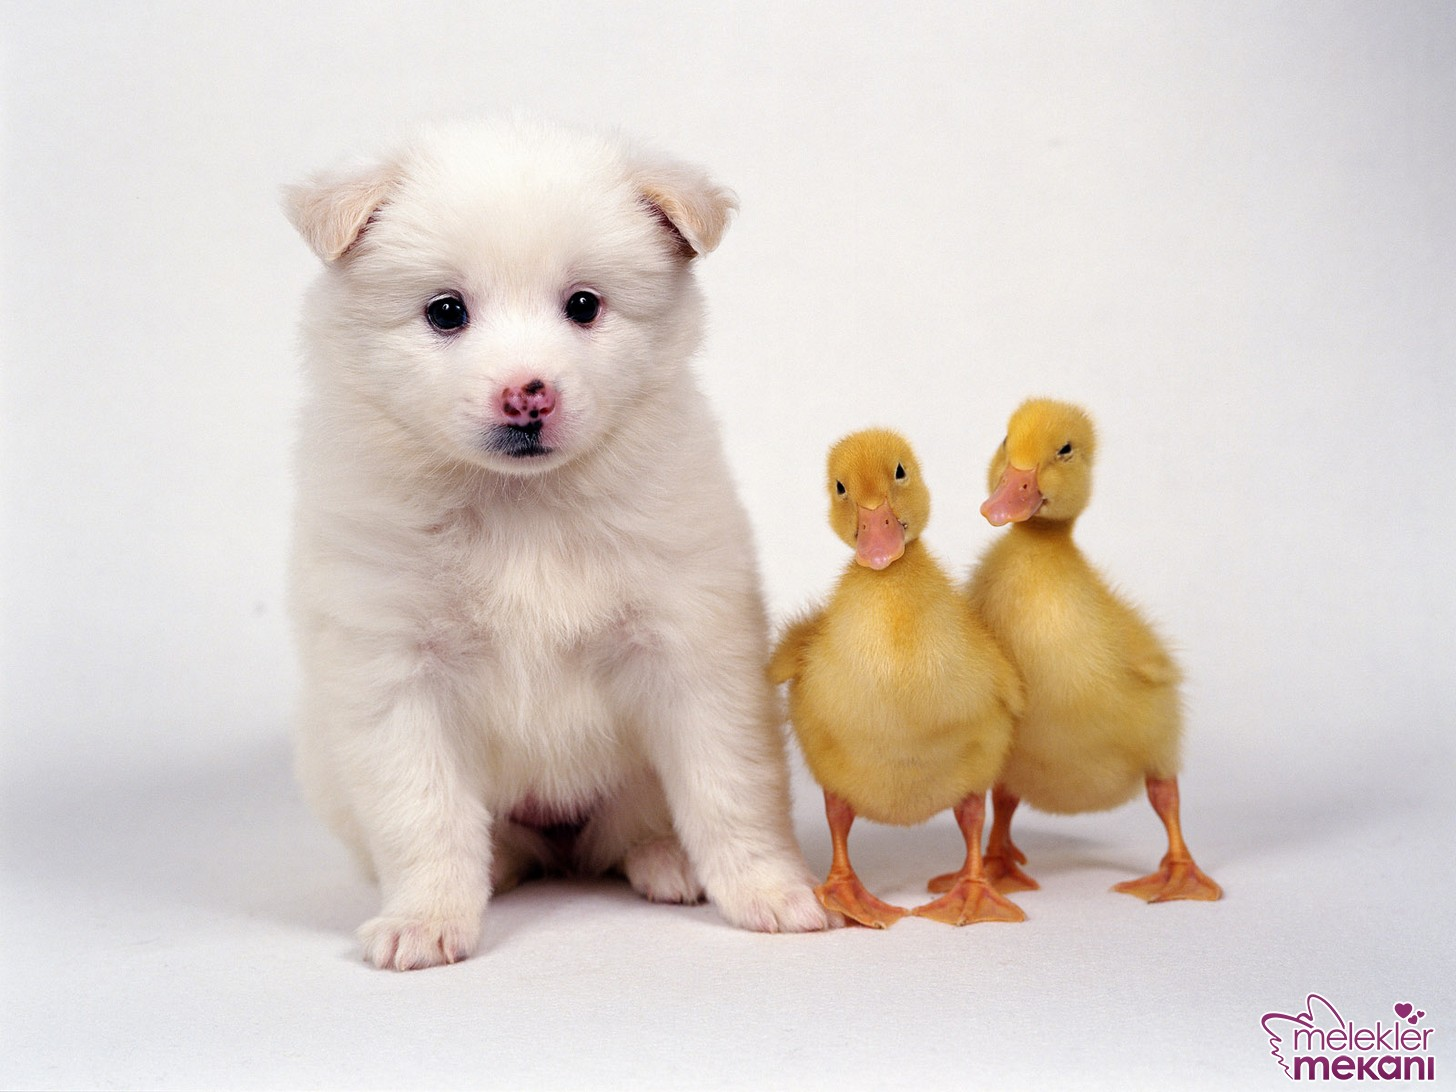 two-duck-chicks-and-a-puppy.JPG